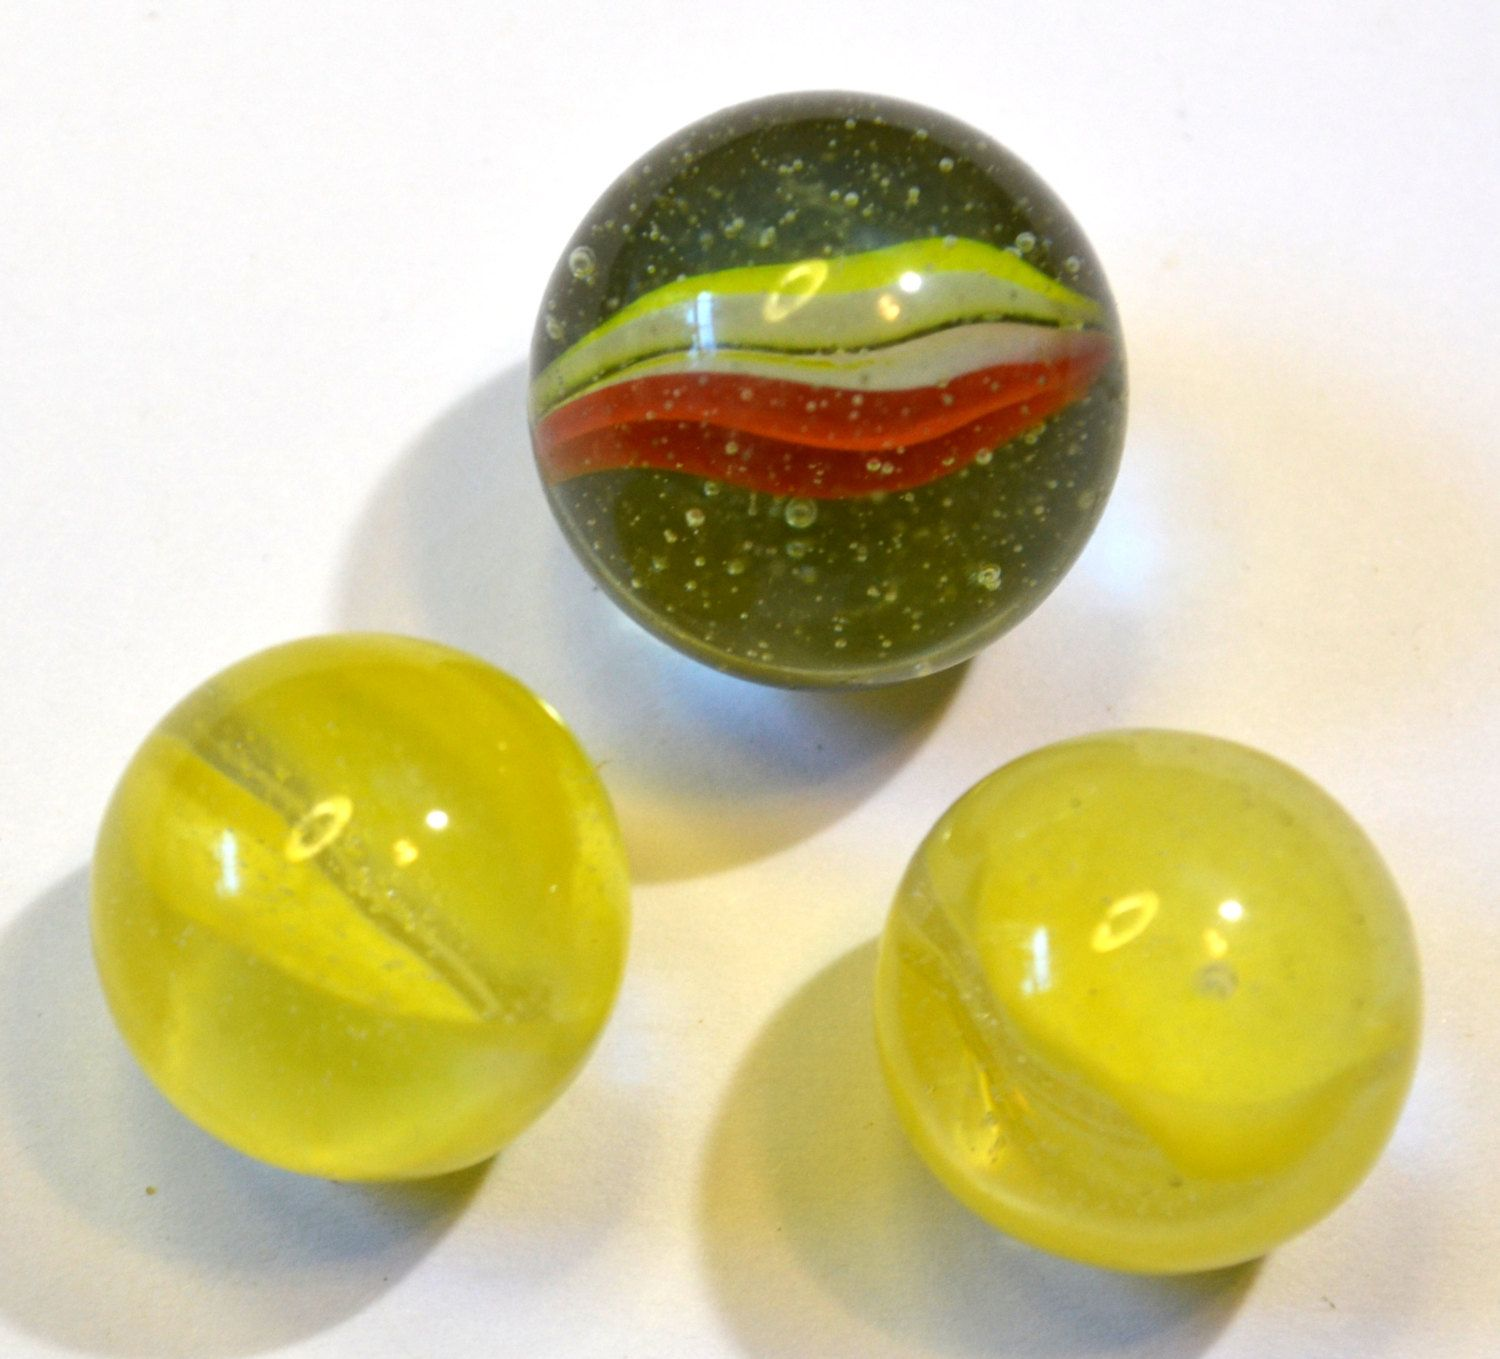 3 vintage cats eye glass shooter marbles 2 yellow 22mm glass 3 vintage cats eye glass shooter marbles 2 yellow 22mm glass marbles 1 25mm greenorange glass marbles round glass marbles reviewsmspy